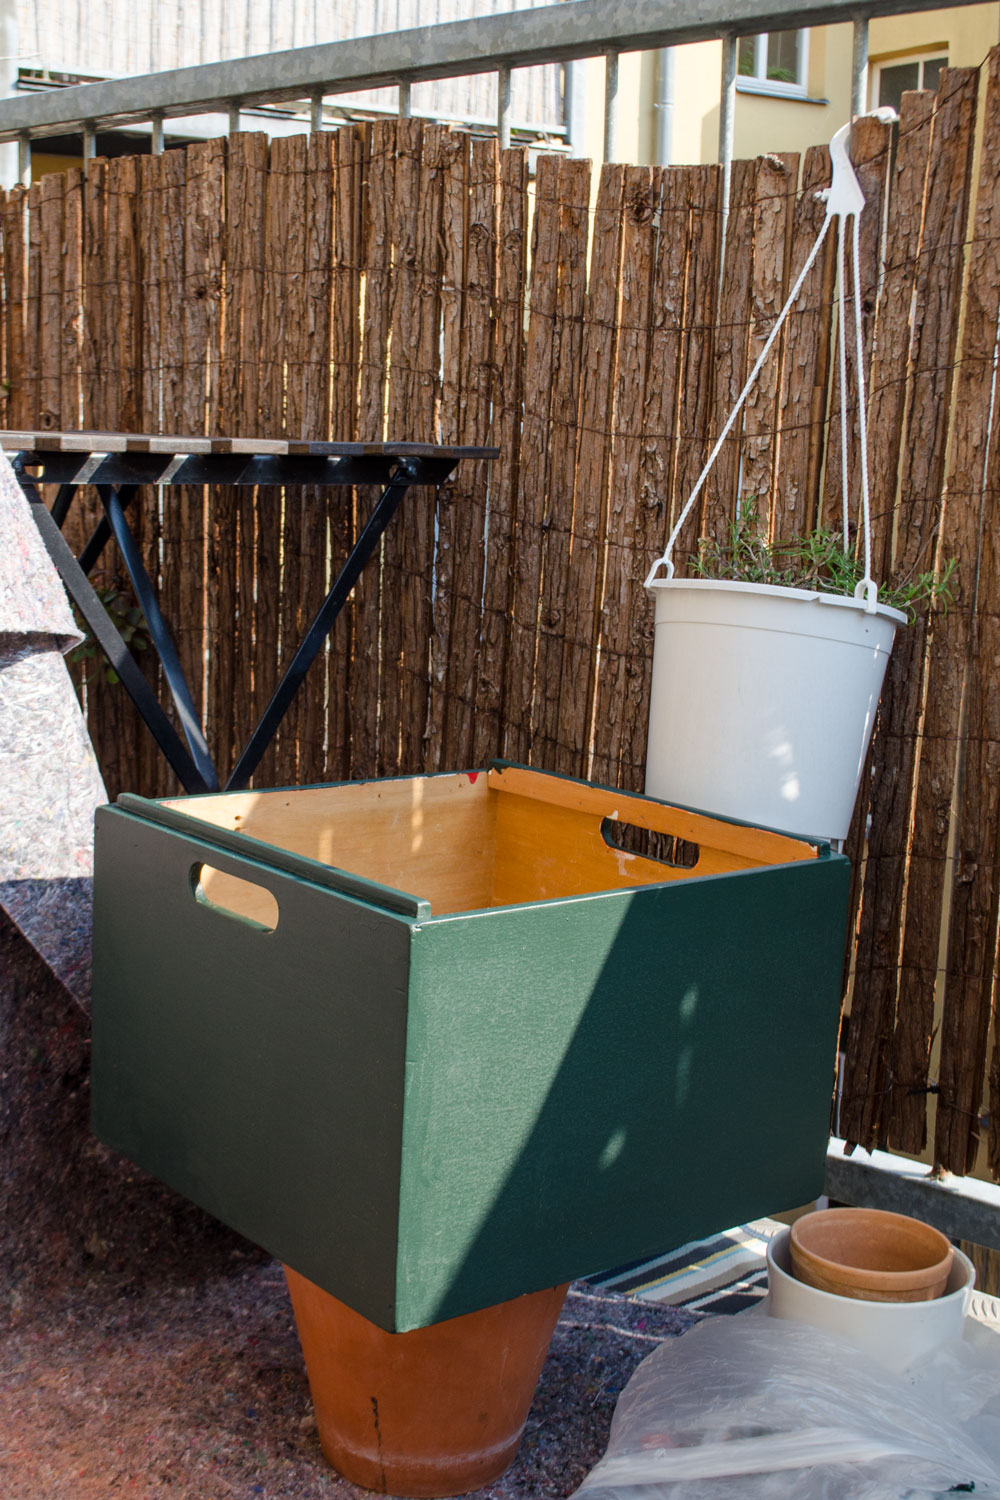 DIY UPCYCLING MID-CENTURY HIGHBOARD DIY mit Remmers [eco]| (anzeige)